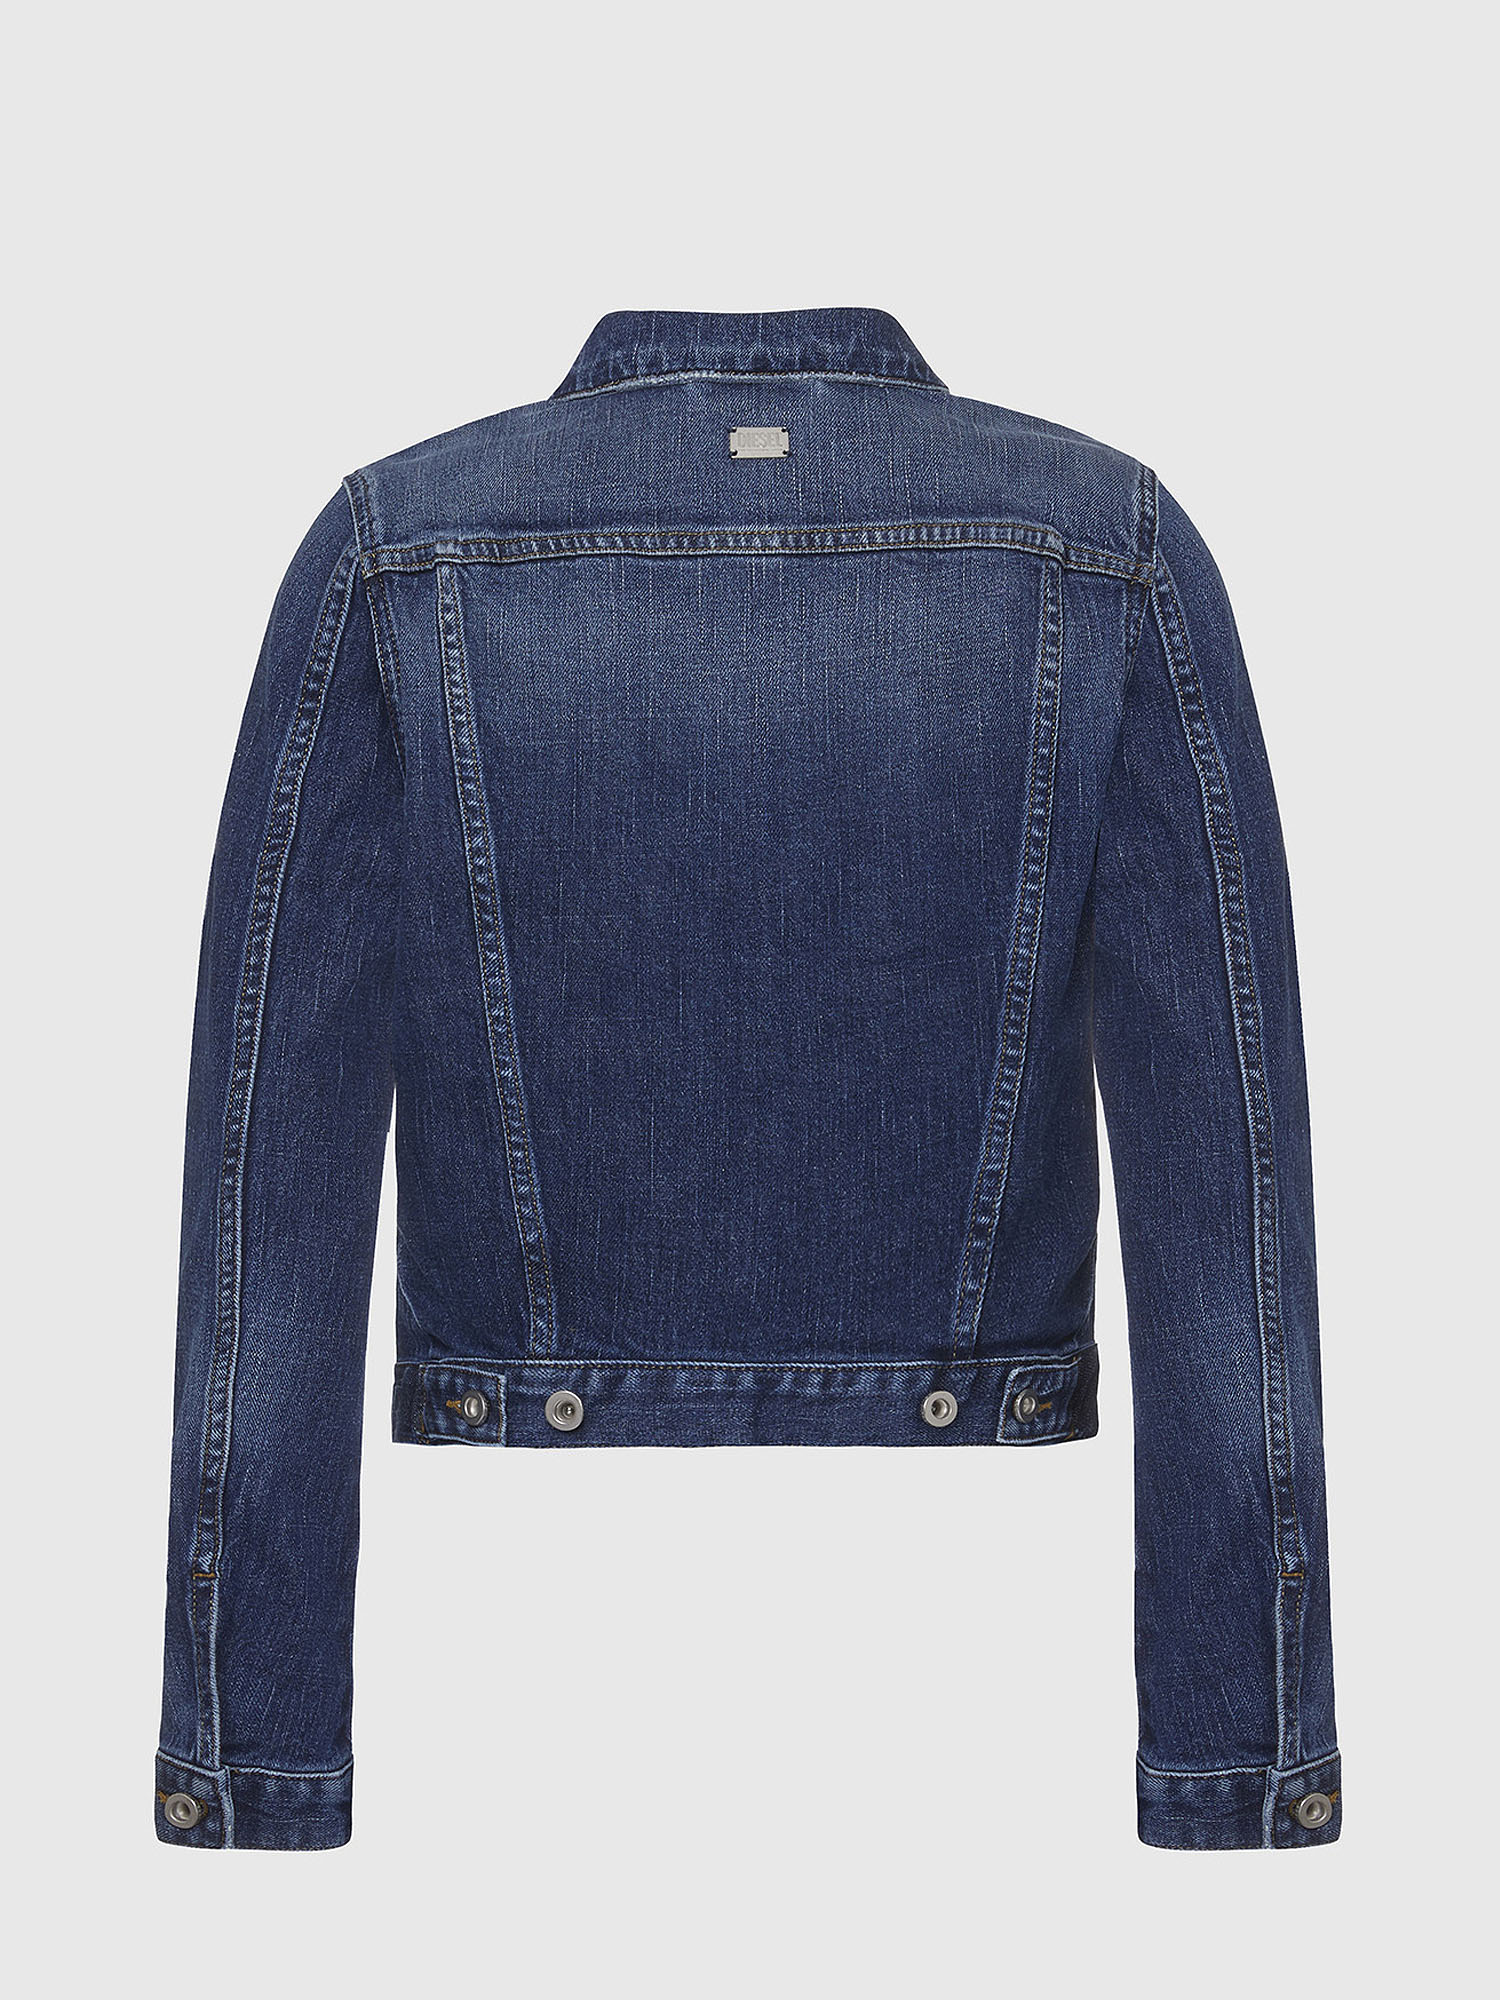 Diesel - DE-LIMMY,  - Denim Jackets - Image 2